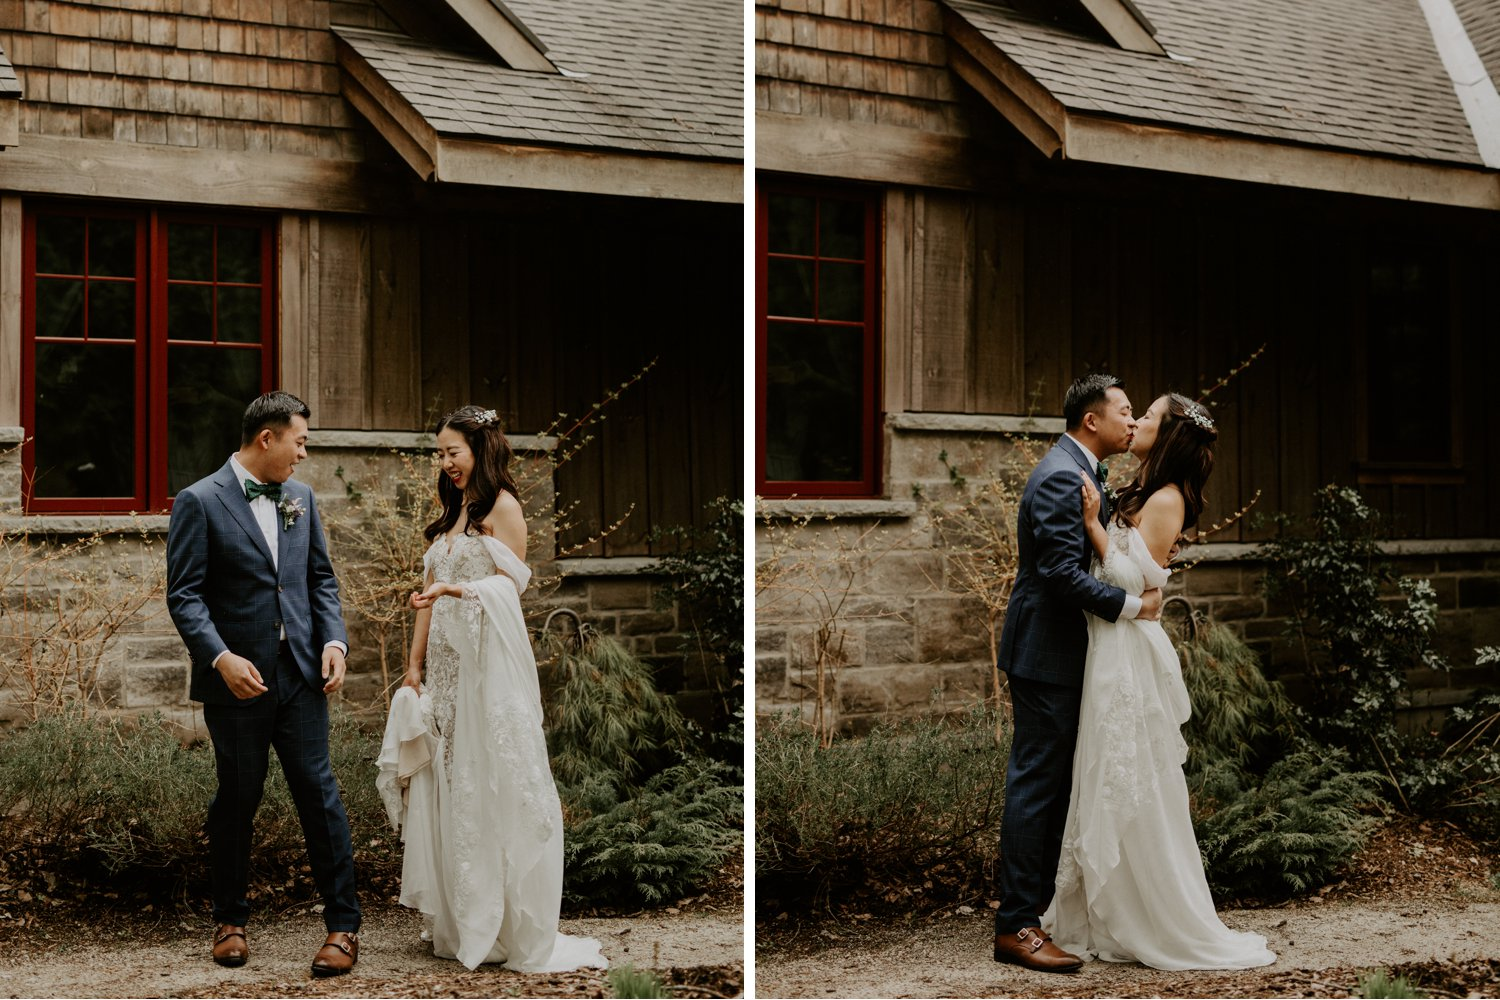 Serenity Cottage Wedding - first look portraits